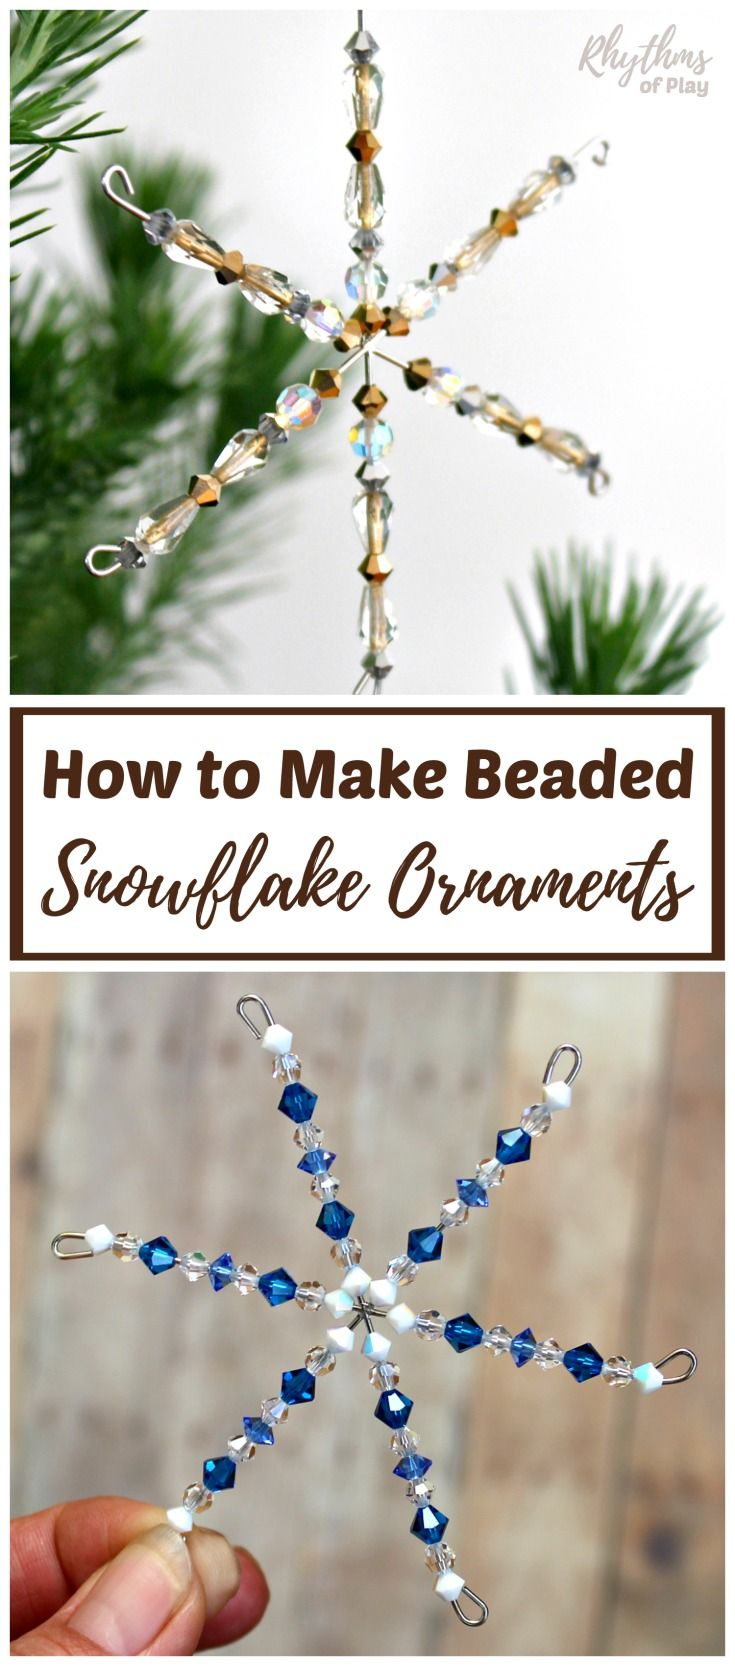 How To Make Beaded Snowflake Ornaments Video Tutorial Rop Beaded Snowflakes Ornament Beaded Snowflakes Easy Winter Crafts